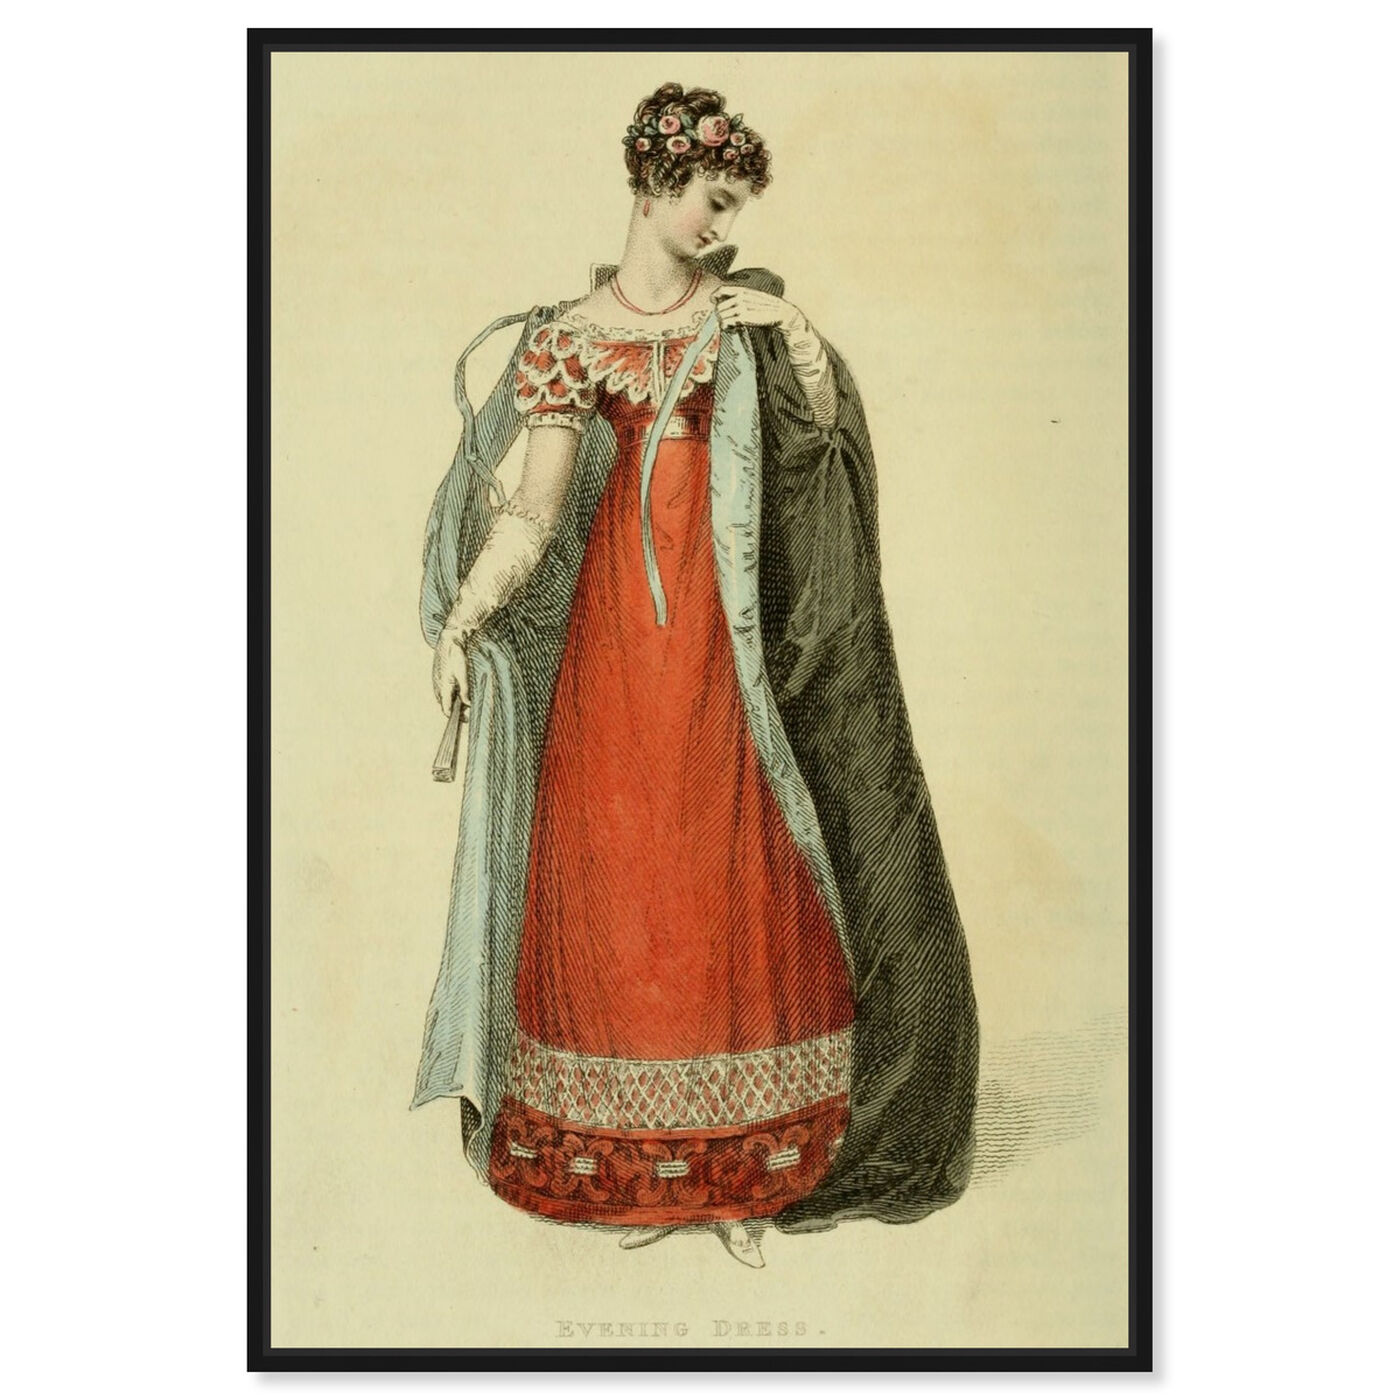 Front view of Evening Dress - The Art Cabinet featuring classic and figurative and realism art.